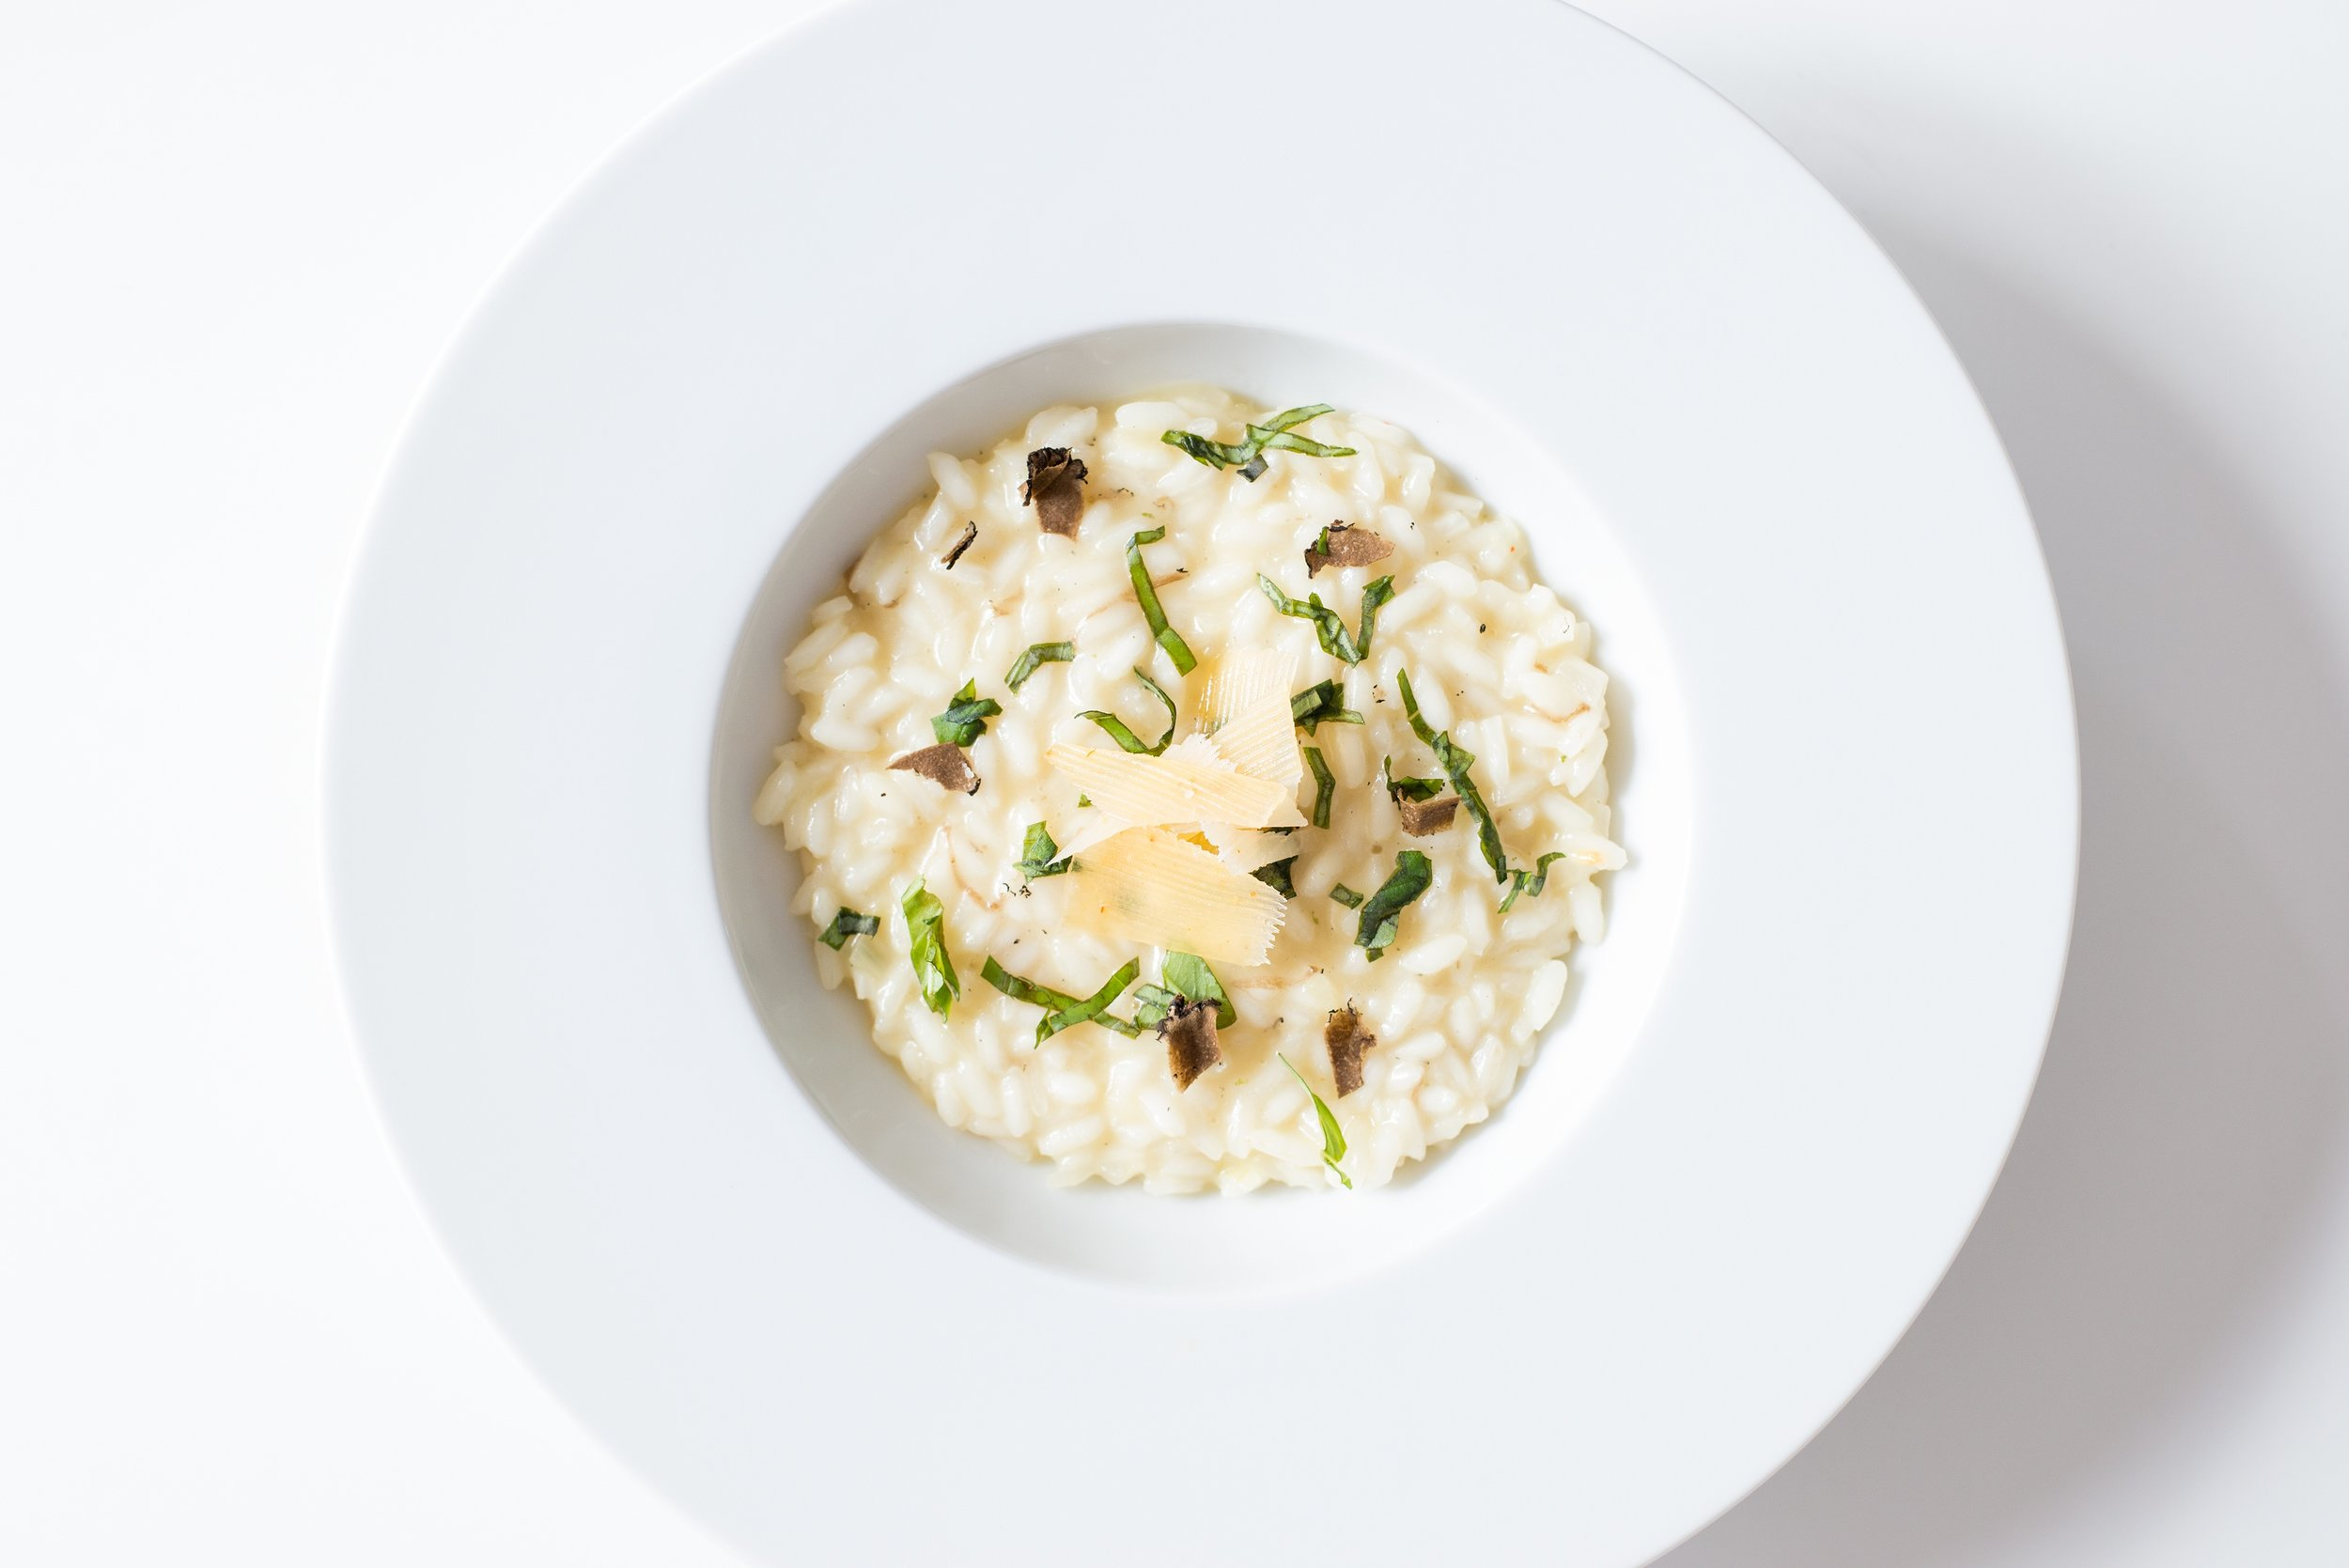 Mushroom risotto recipe made with rapeseed oil